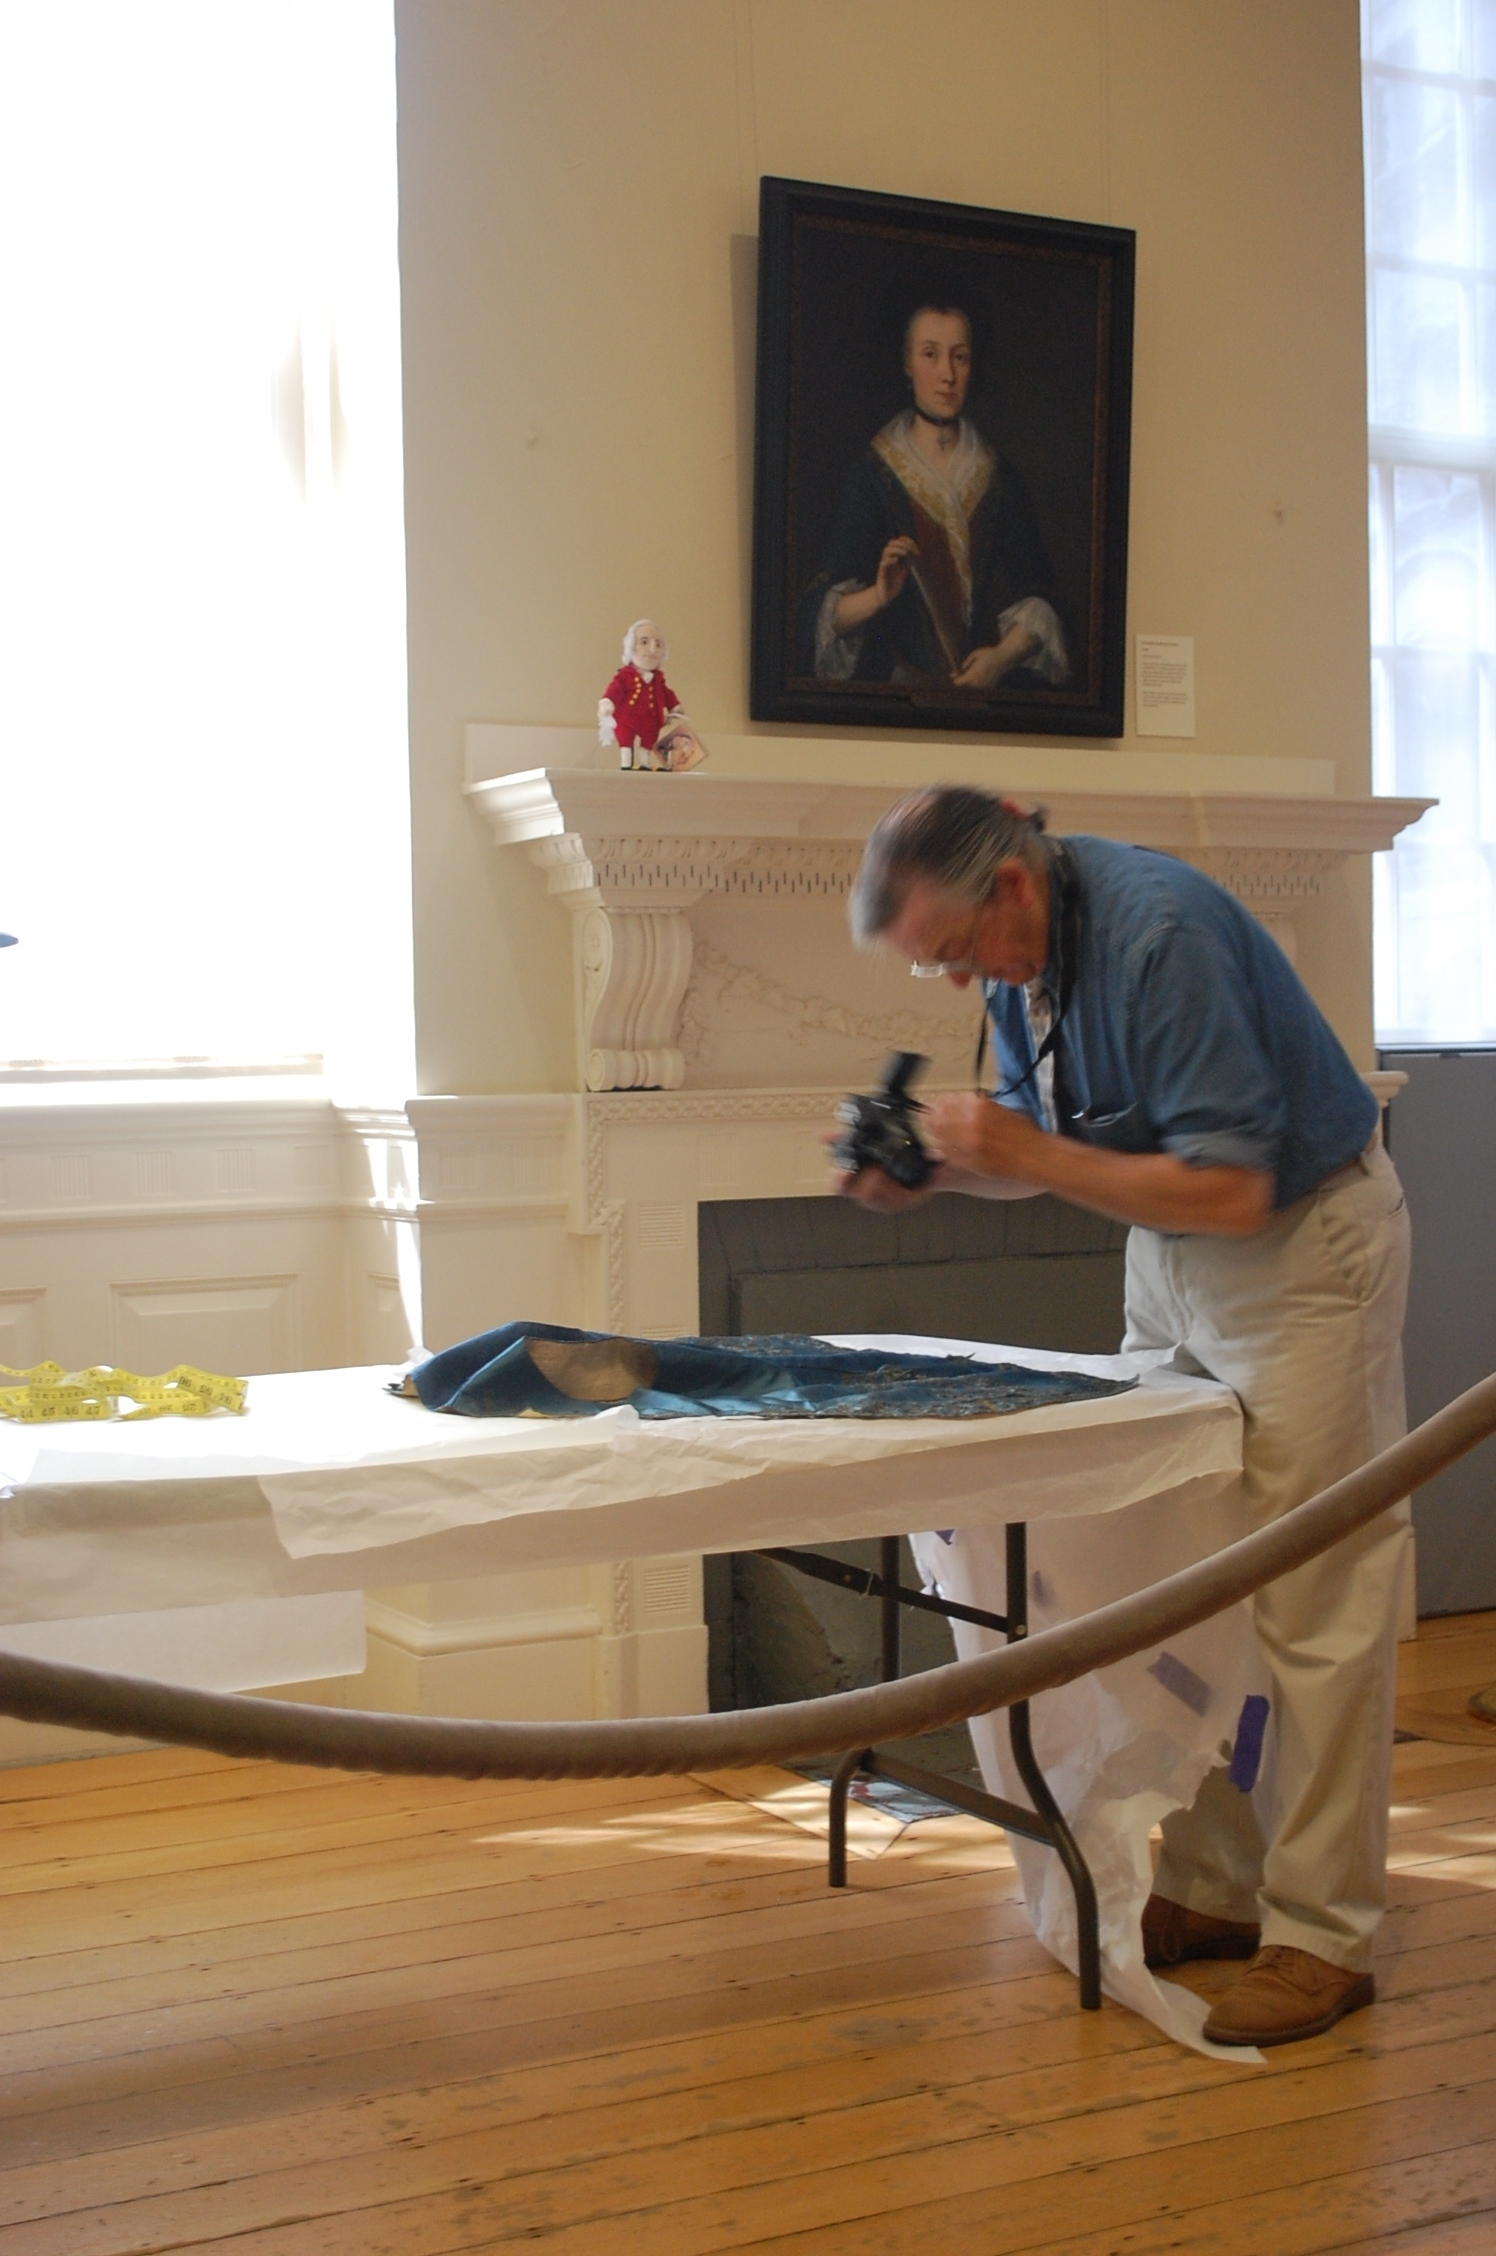 He also took many photos of the exquisite details to aid in the reproduction process.